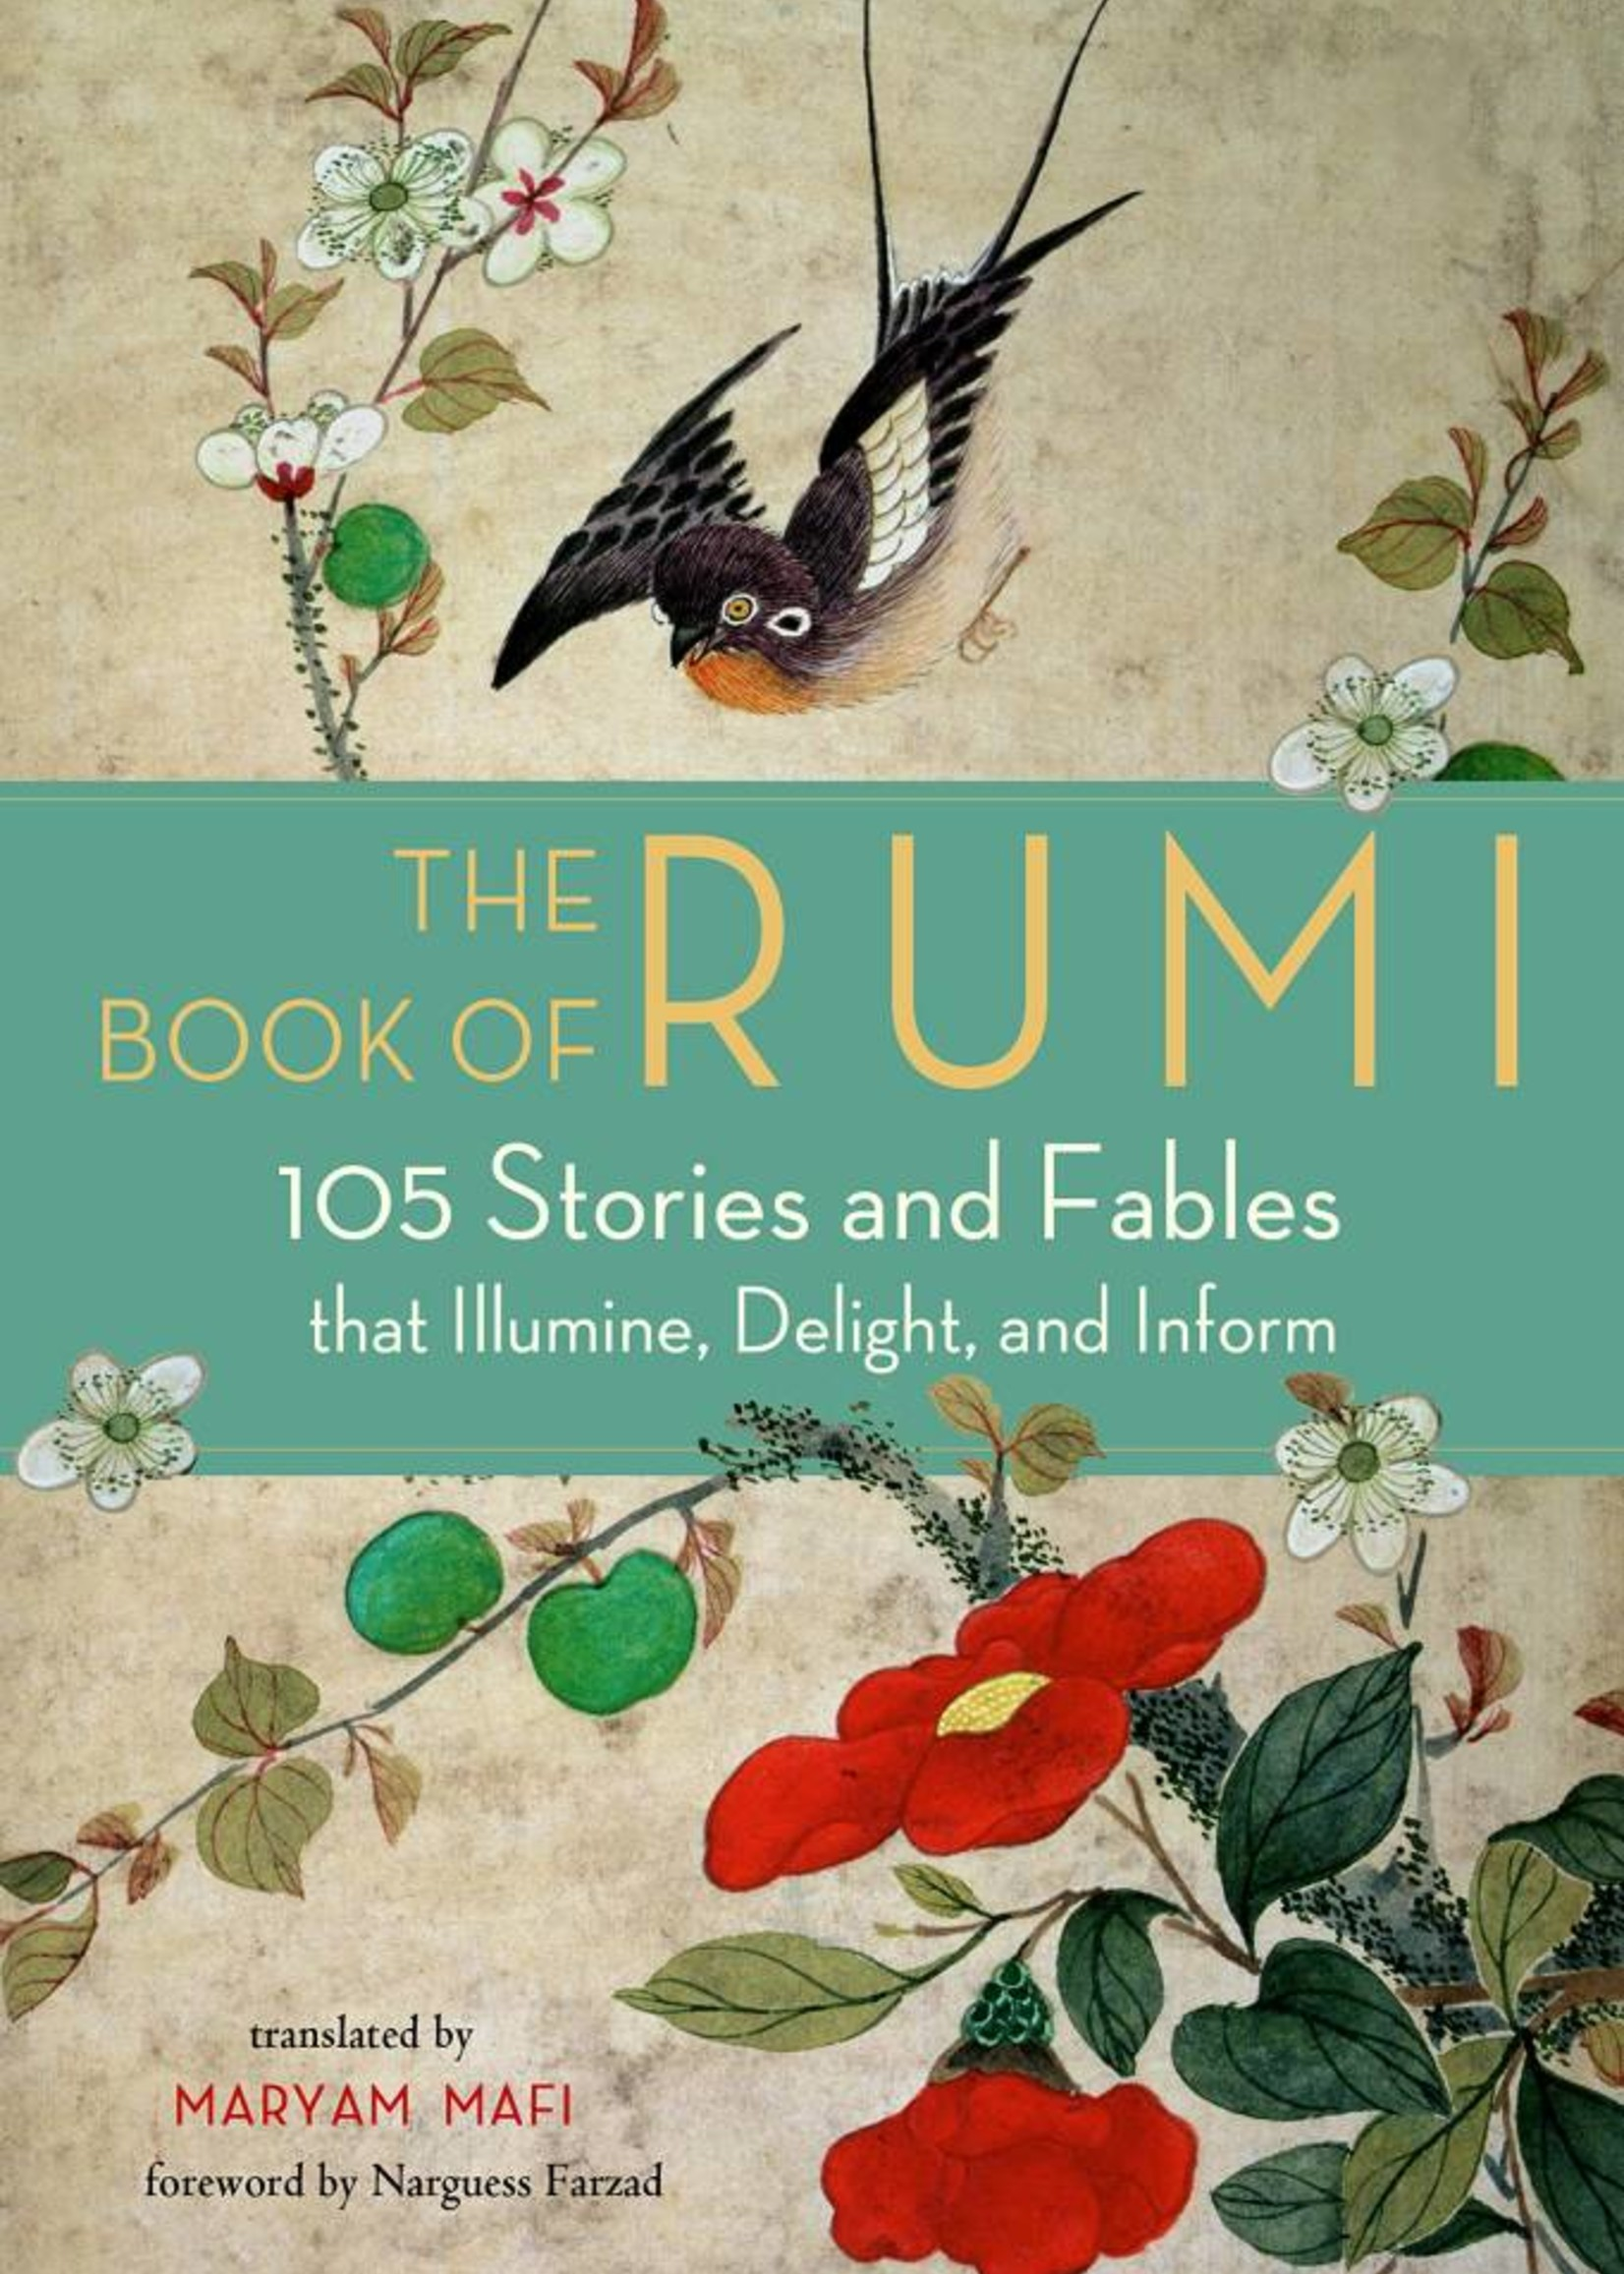 The Book of Rumi | 105 Stories and Fables that Illumine, Delight, and Inform